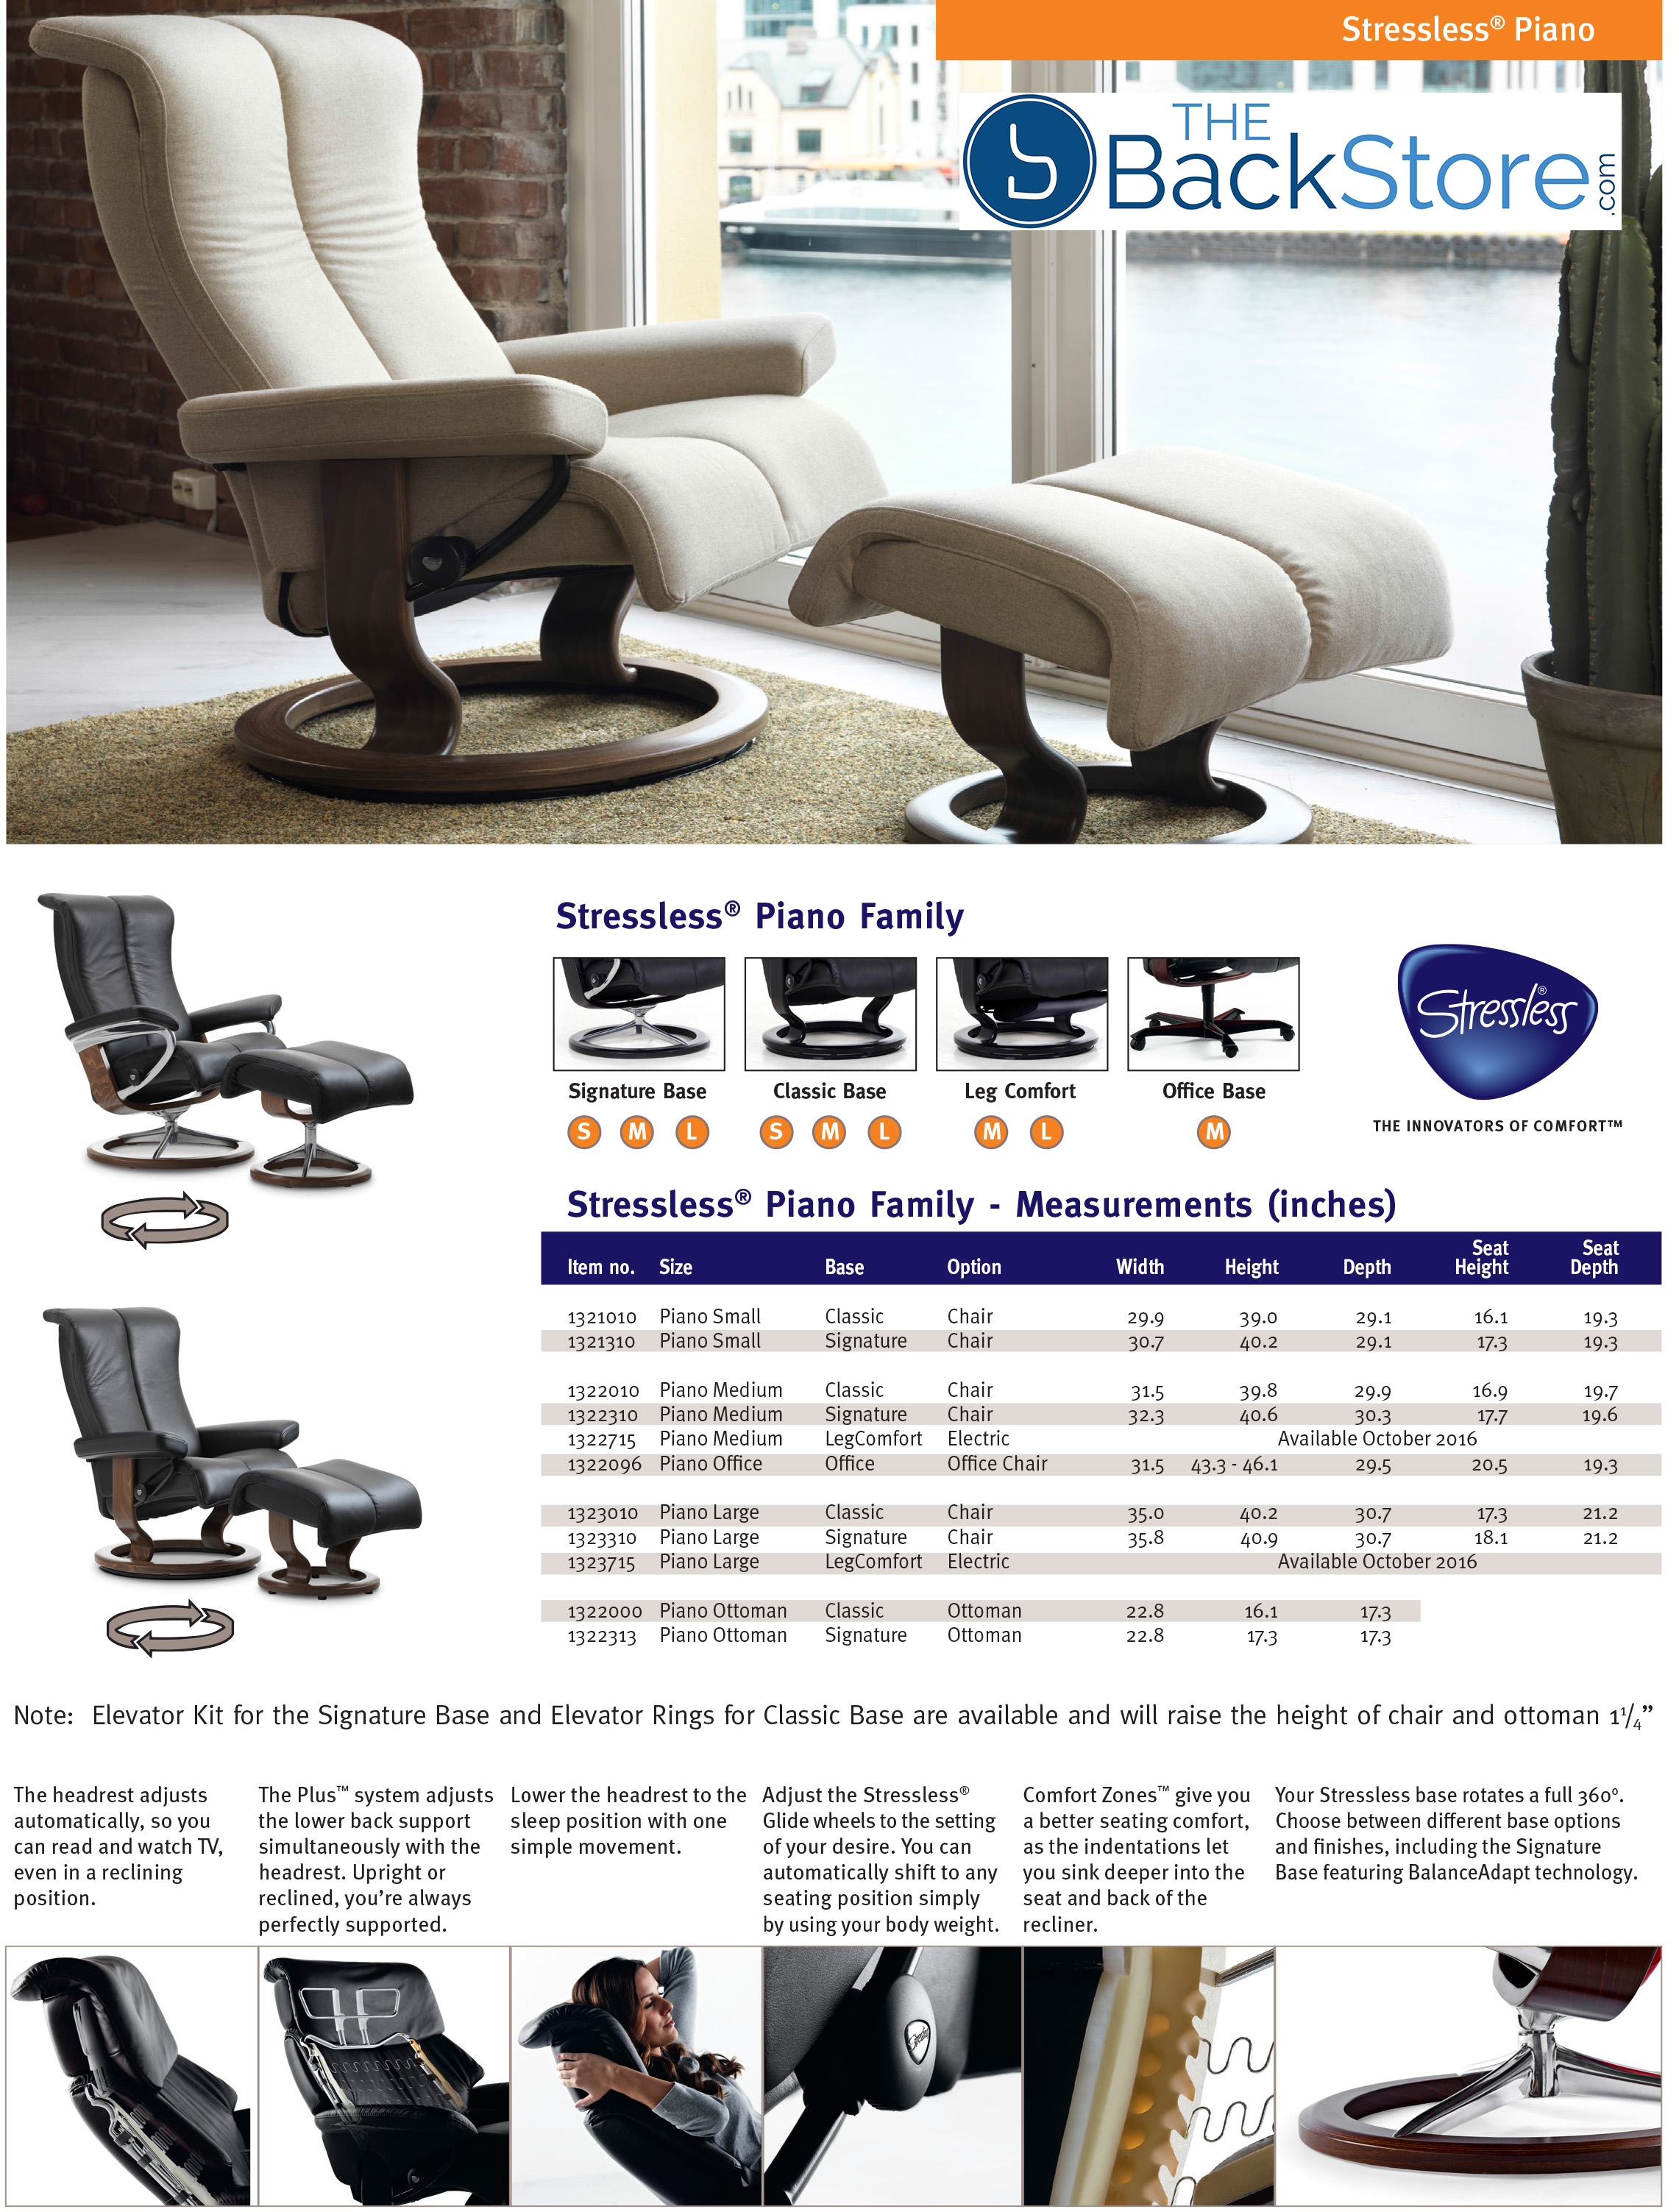 Stressless Piano Signature Metal Base Recliner Chair by Ekornes